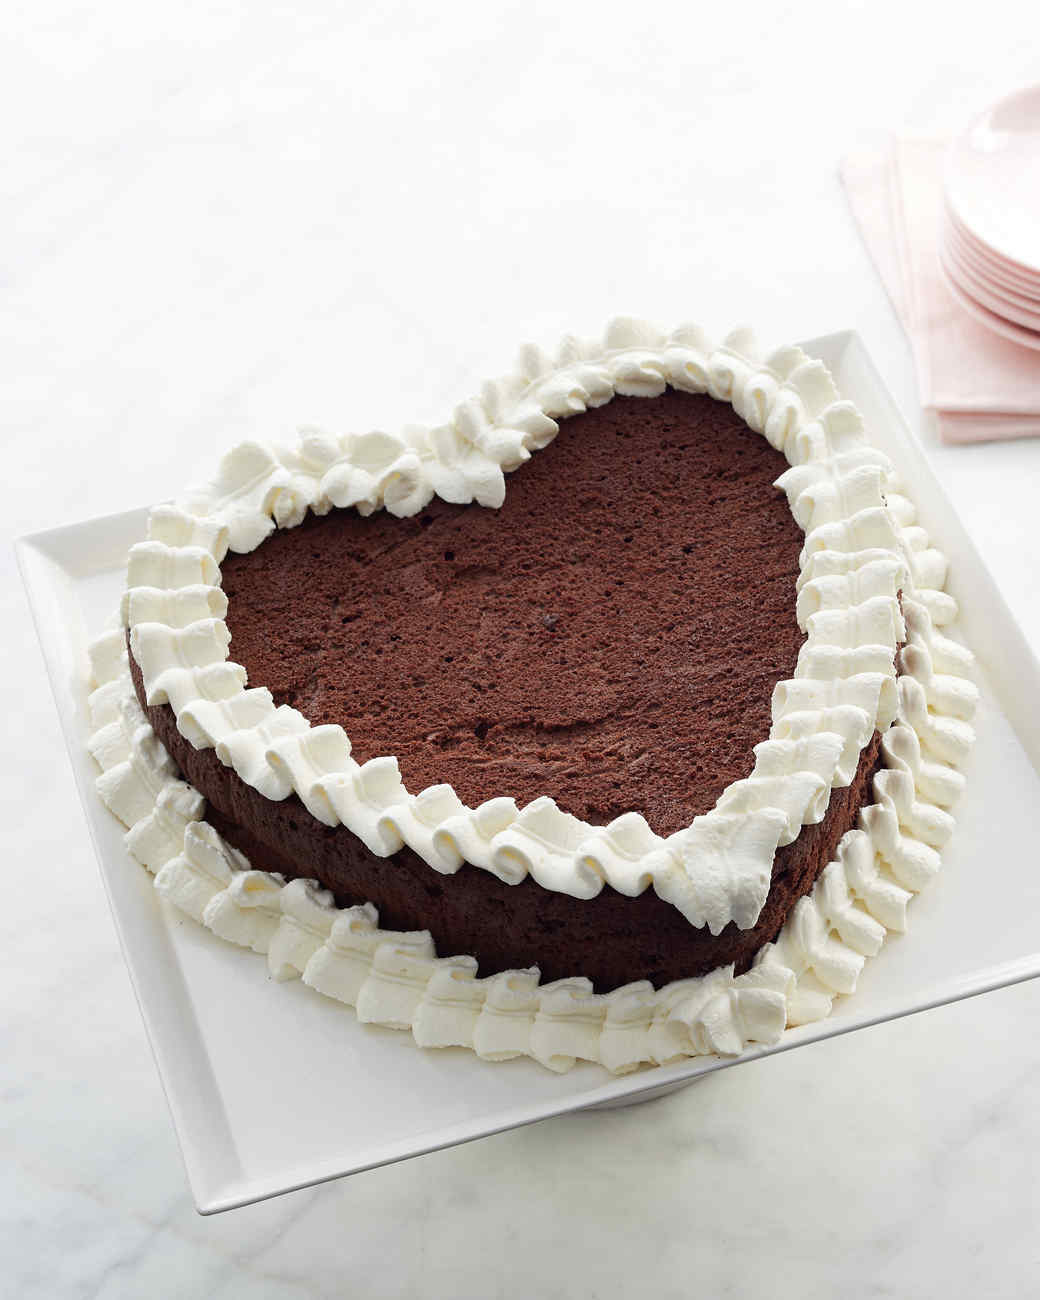 roberta-heart-chocolate-cake-161-d112178.jpg